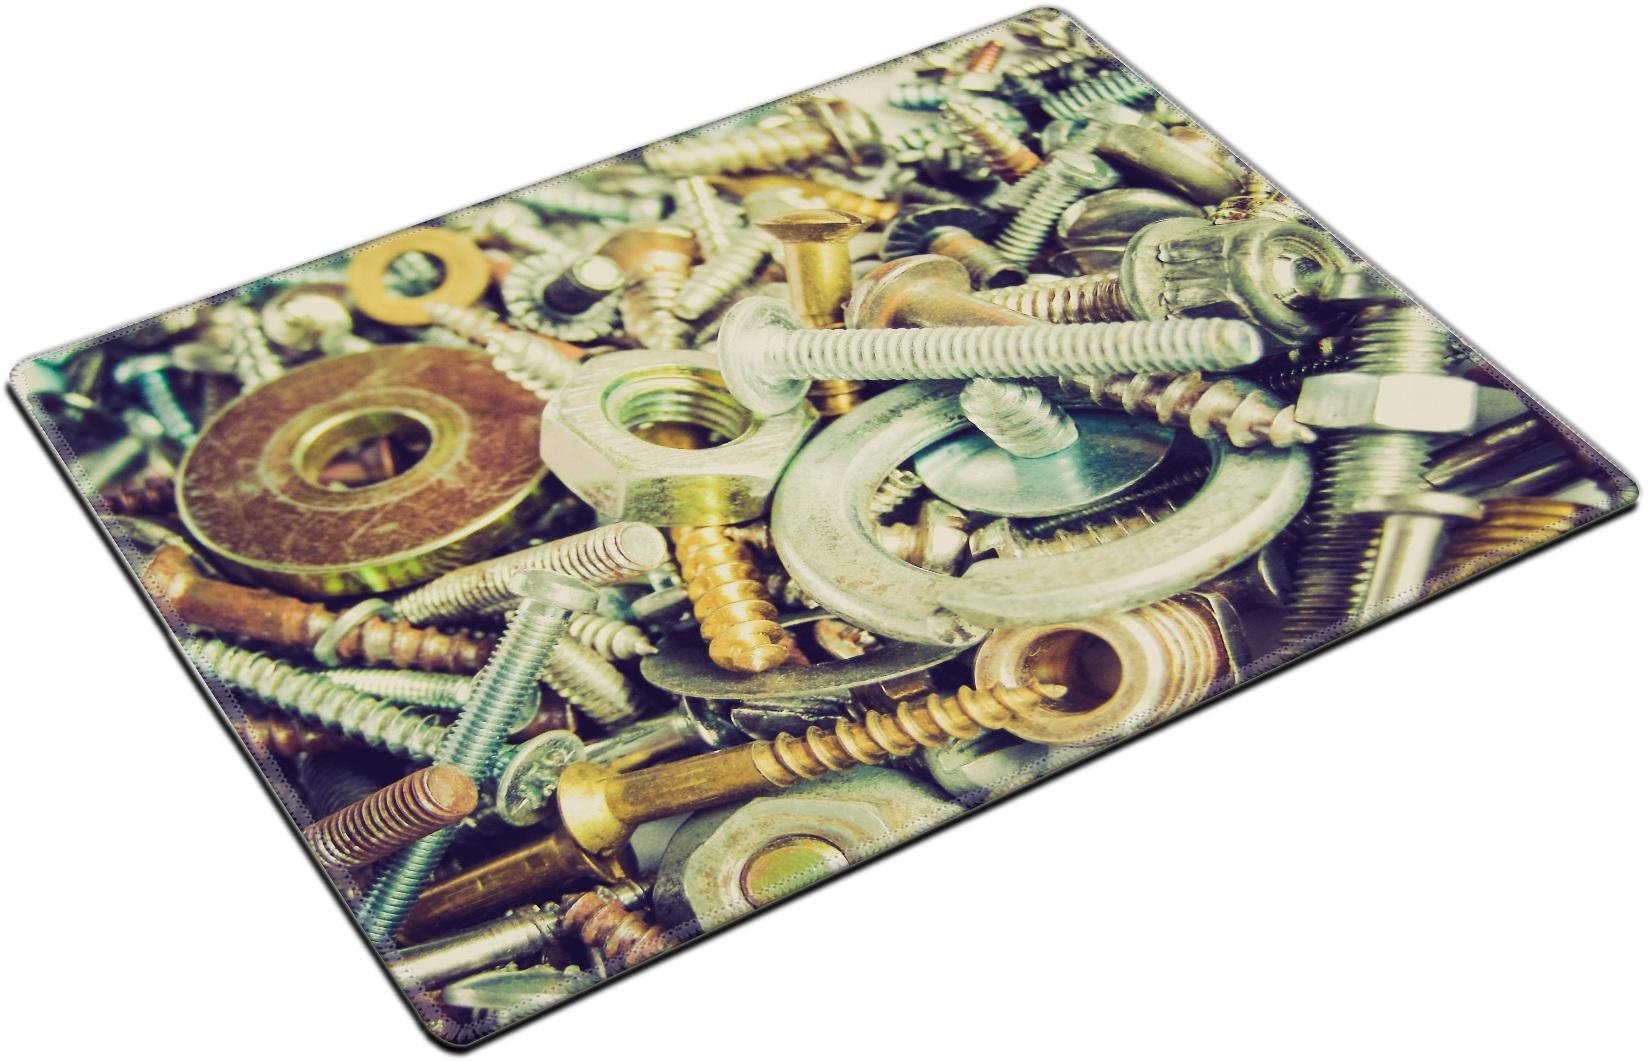 MSD Placemat Non-Slip Natural Rubber Desk Pads Place-mats Design 27271475 Vintage Looking Industrial Steel Hardware Bolts Nuts Screws Useful as Background